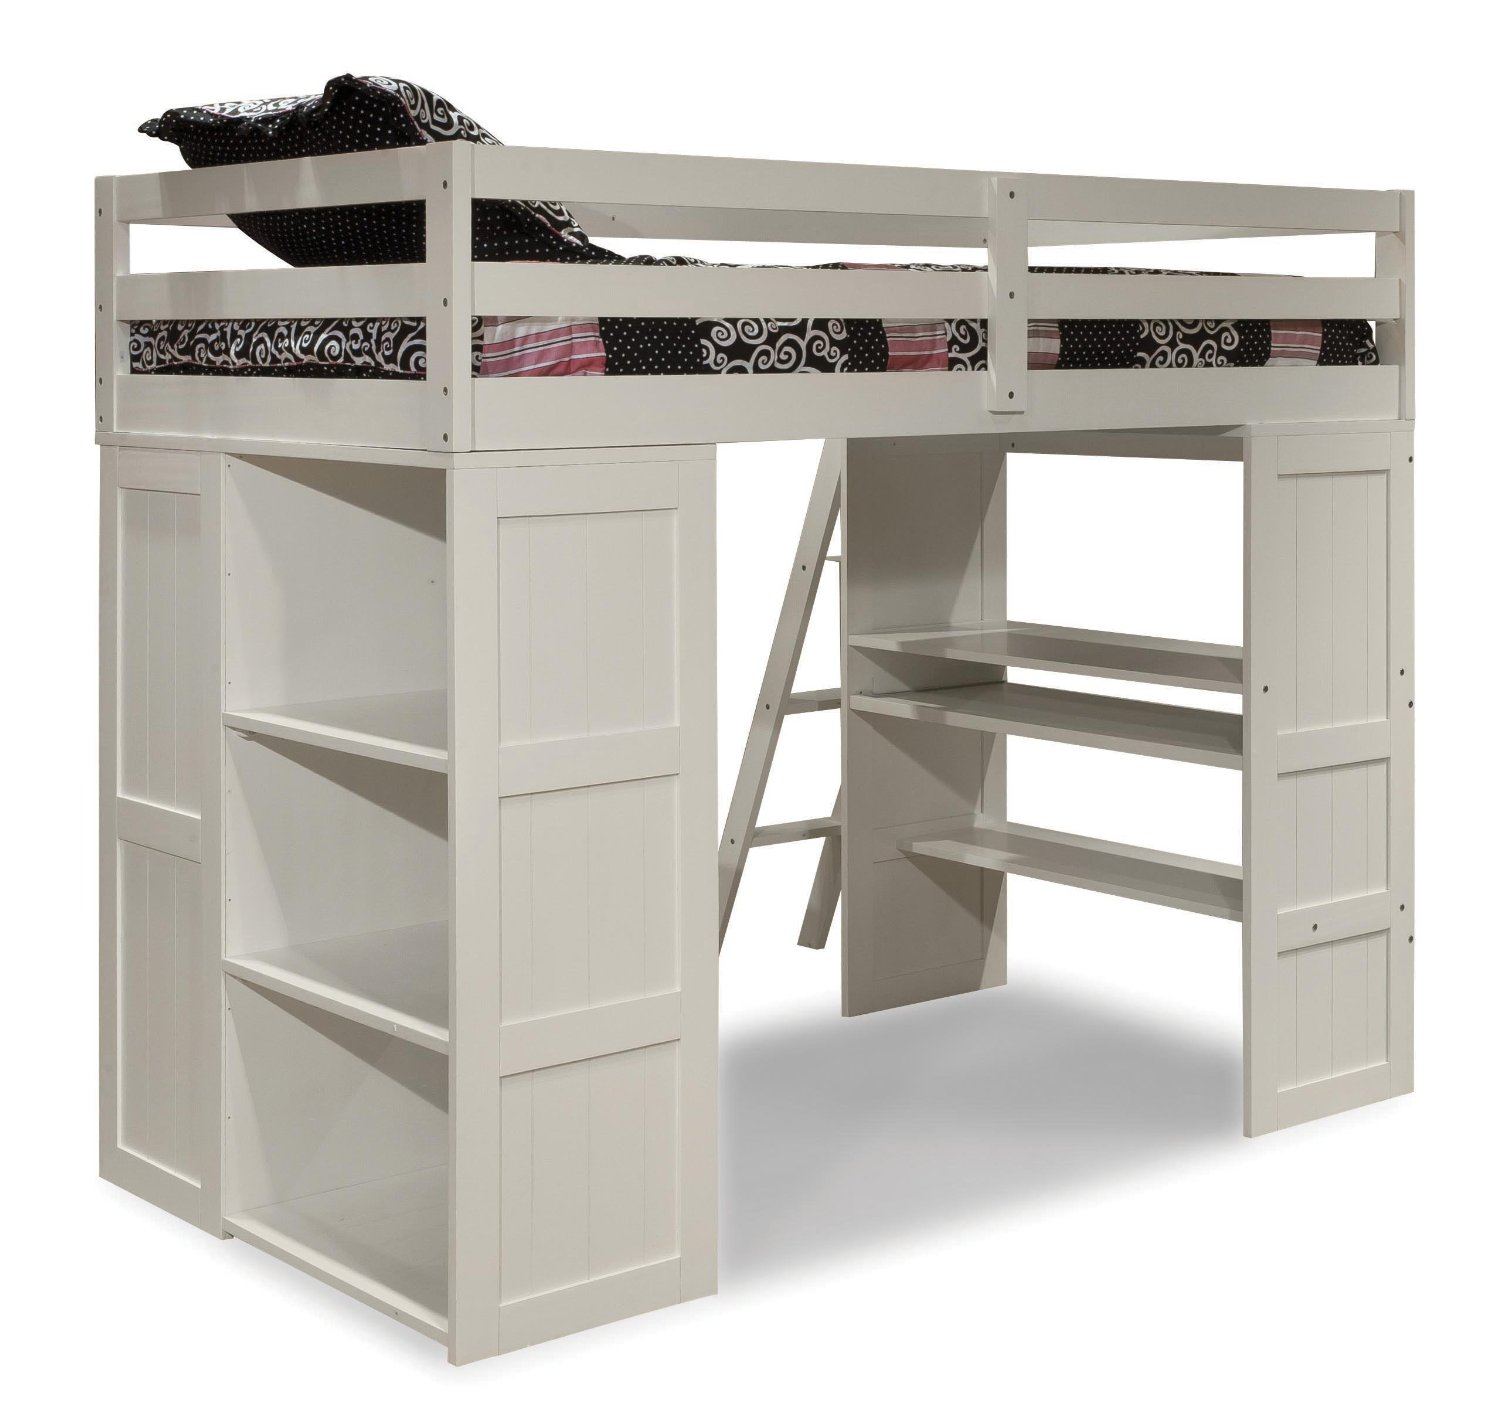 Innovative Canwood Loft Bed for Your Kids Bedroom Ideas: Outstanding Wood Junior Loft Bed | Pretty Canwood Loft Bed